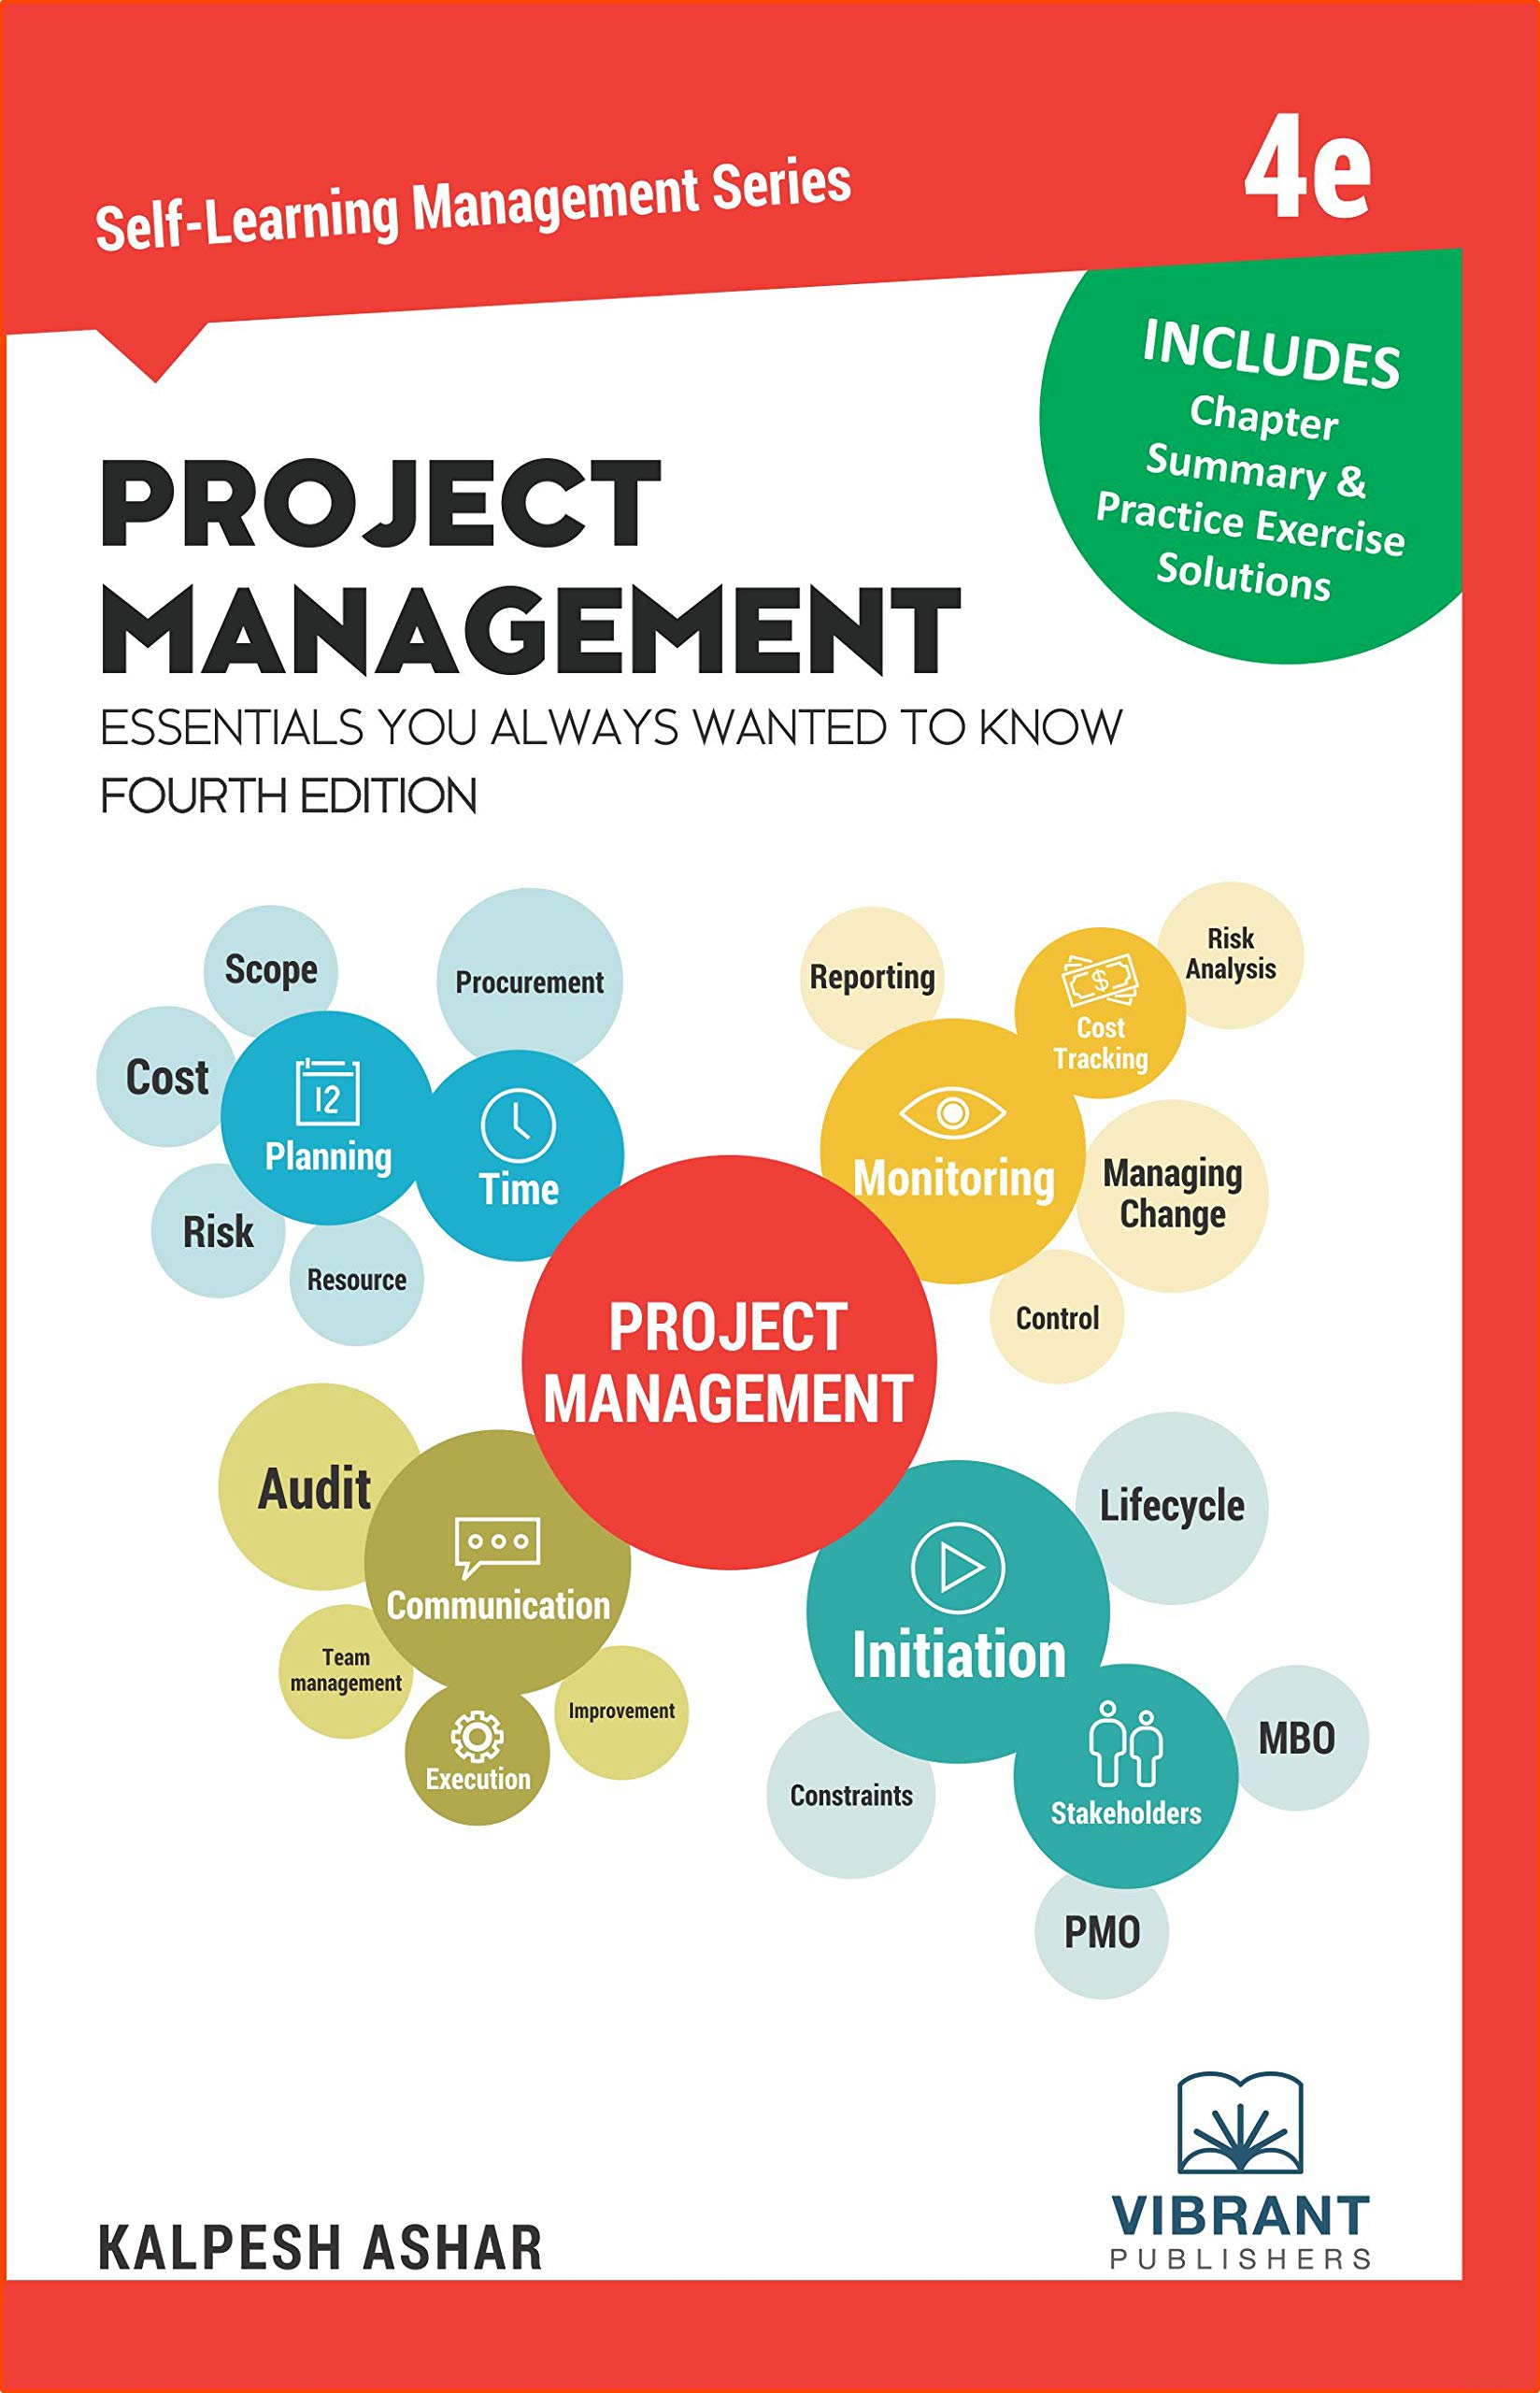 Project Management Essentials You Always Wanted To Know: 4th Edition: 12 (Self Learning Management Series)